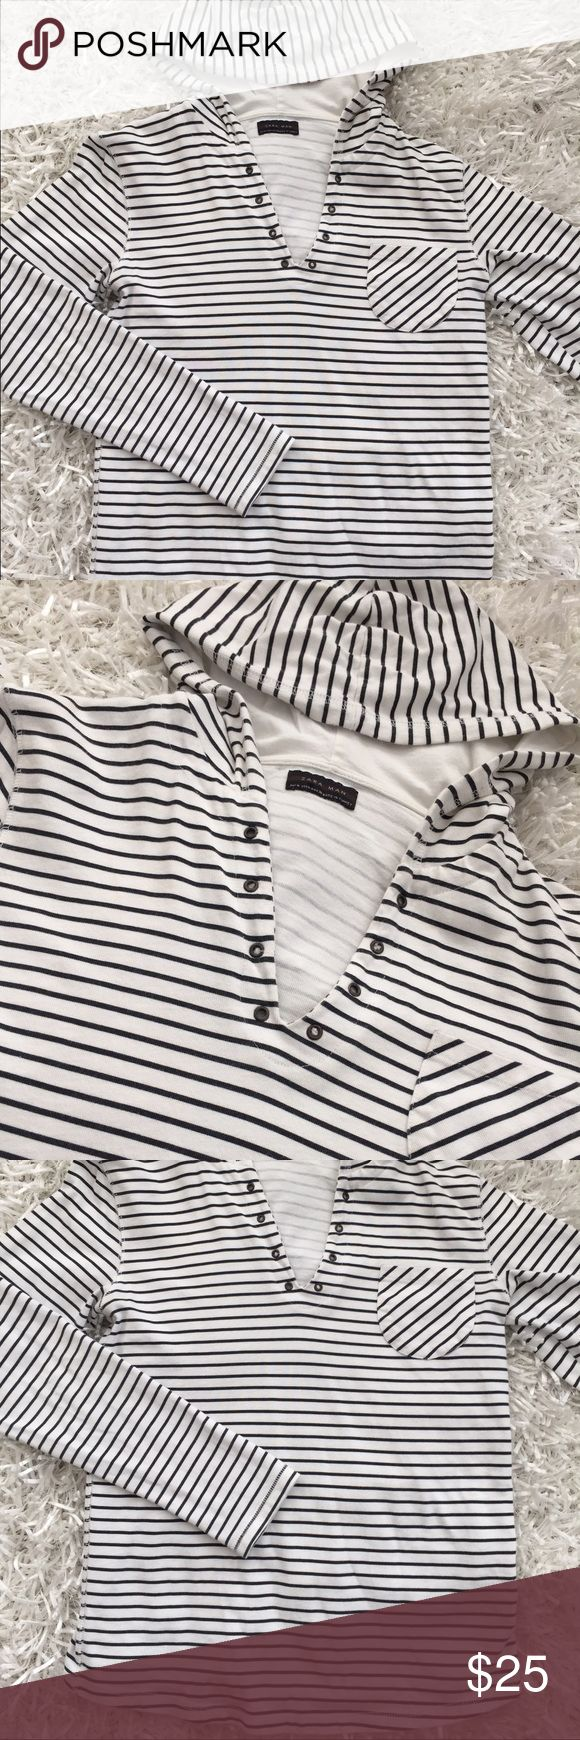 Zara Man Navy and White Stripe Hoodie Lightweight Zara Man lightweight hoodie in navy and white. Perfect condition and slim enough for a women's pullover. Zara Tops Sweatshirts & Hoodies